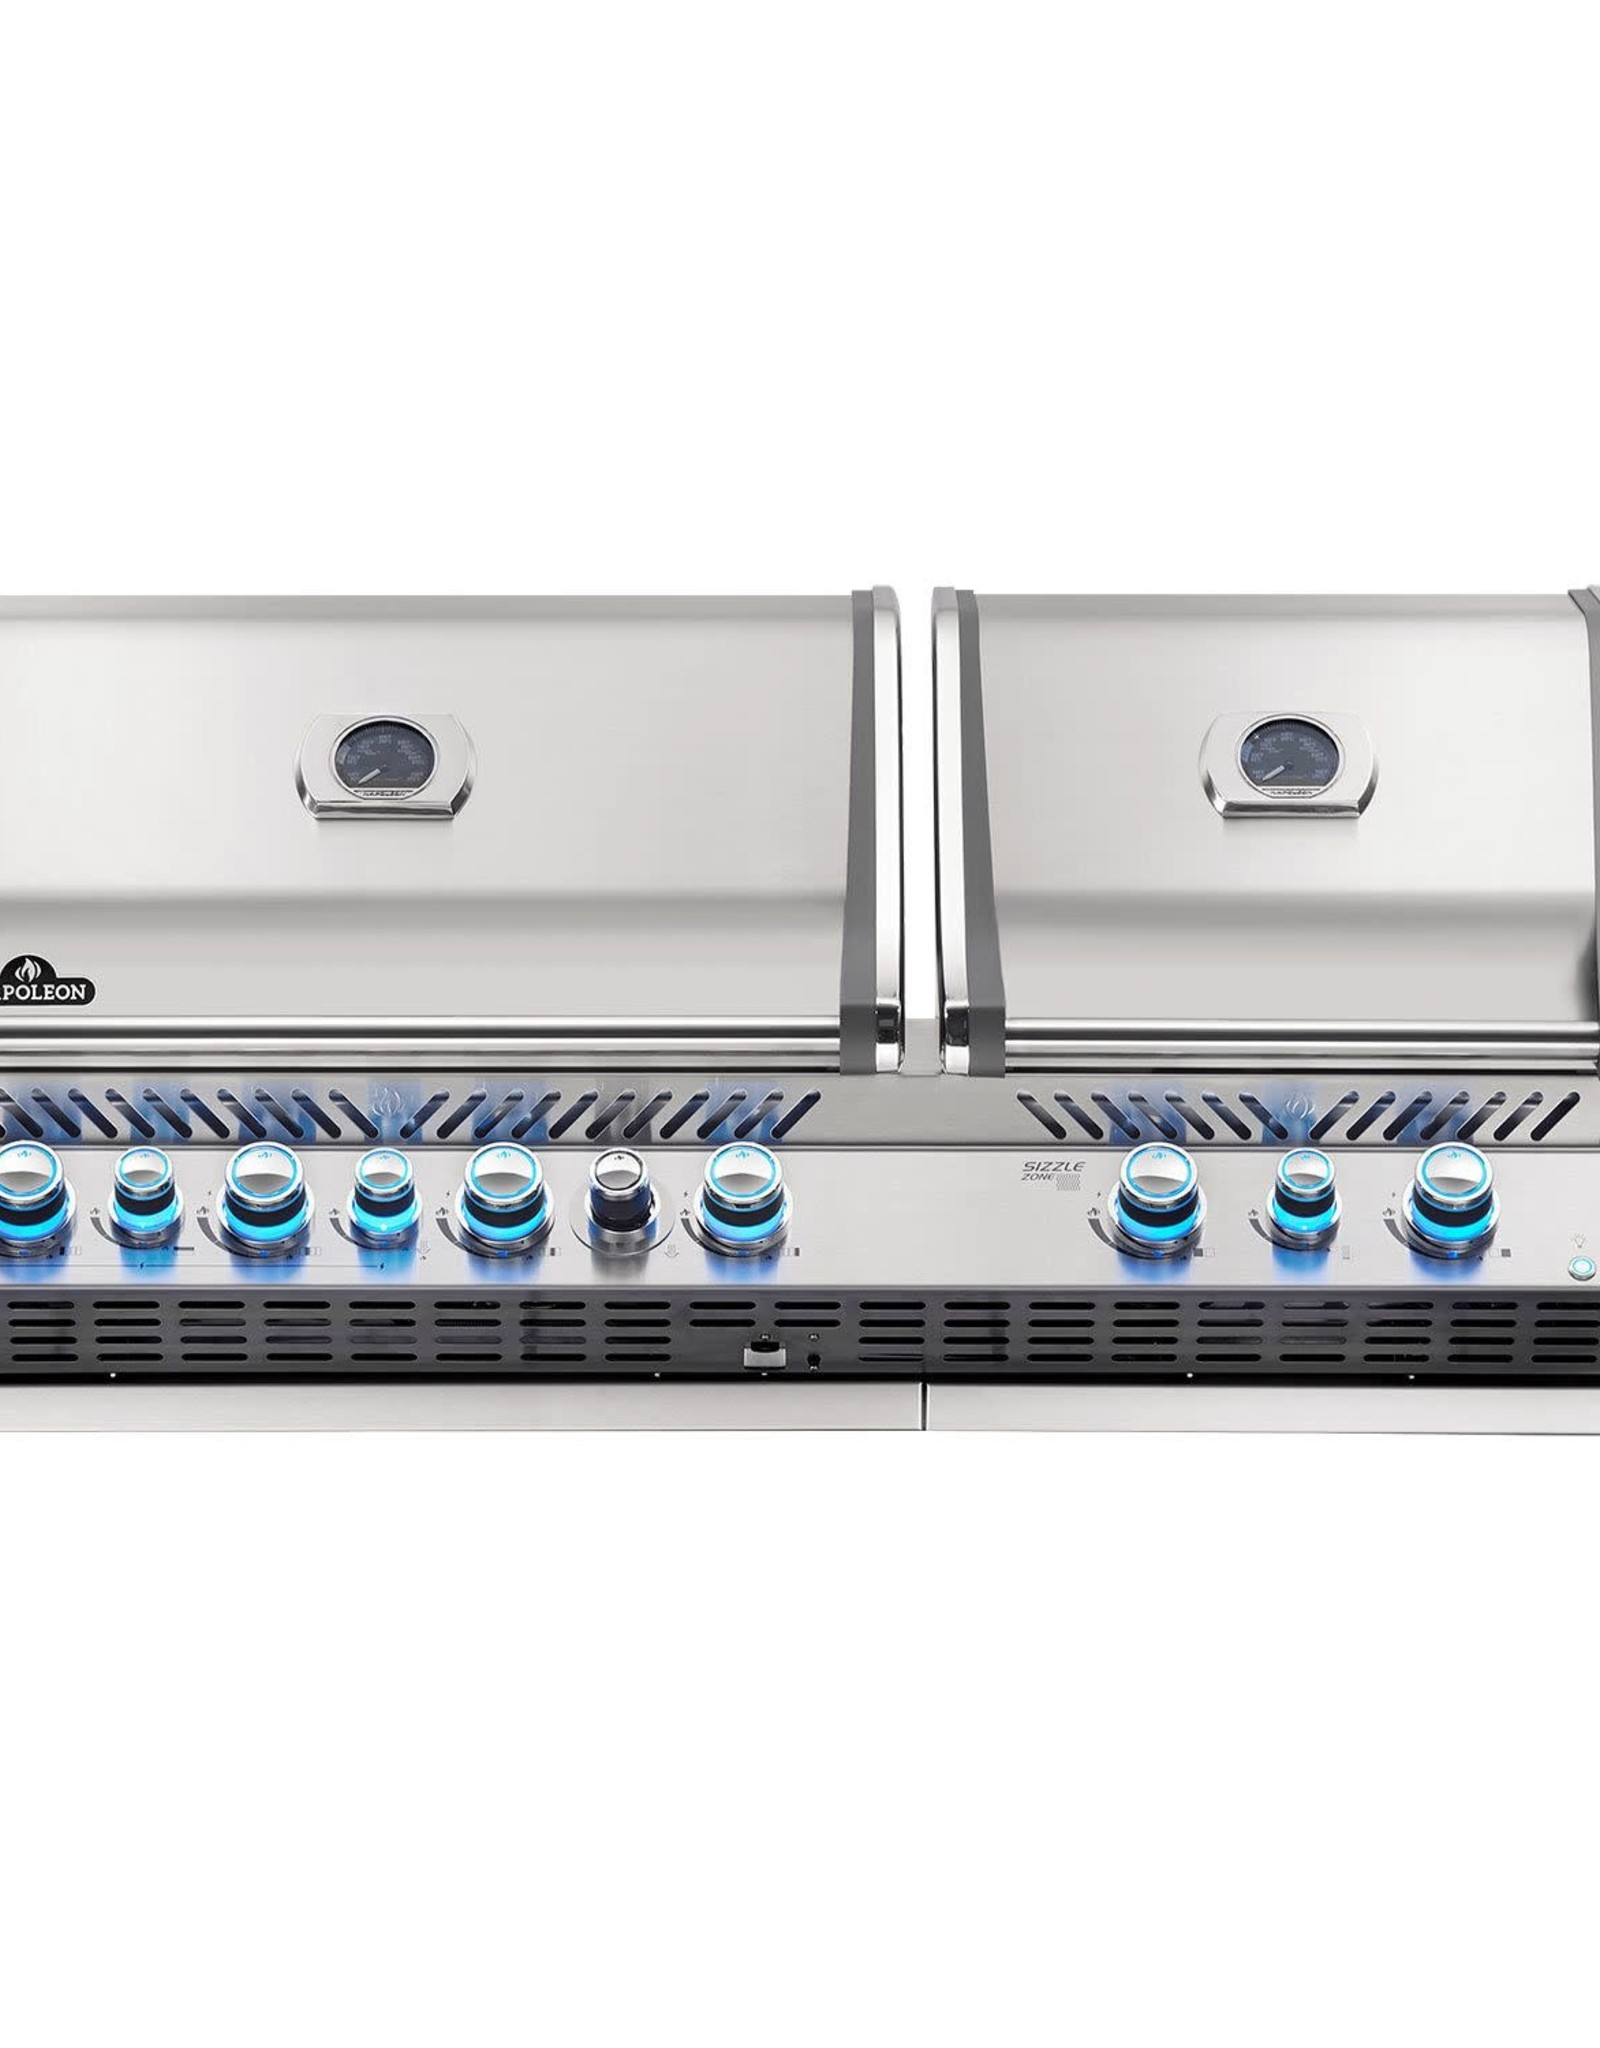 Napoleon Napoleon Prestige PRO 825 Built-in Propane Gas Grill with Infrared Rear Burner and Infrared Sear Burners and Rotisserie Kit - BIPRO825RBIPSS-3